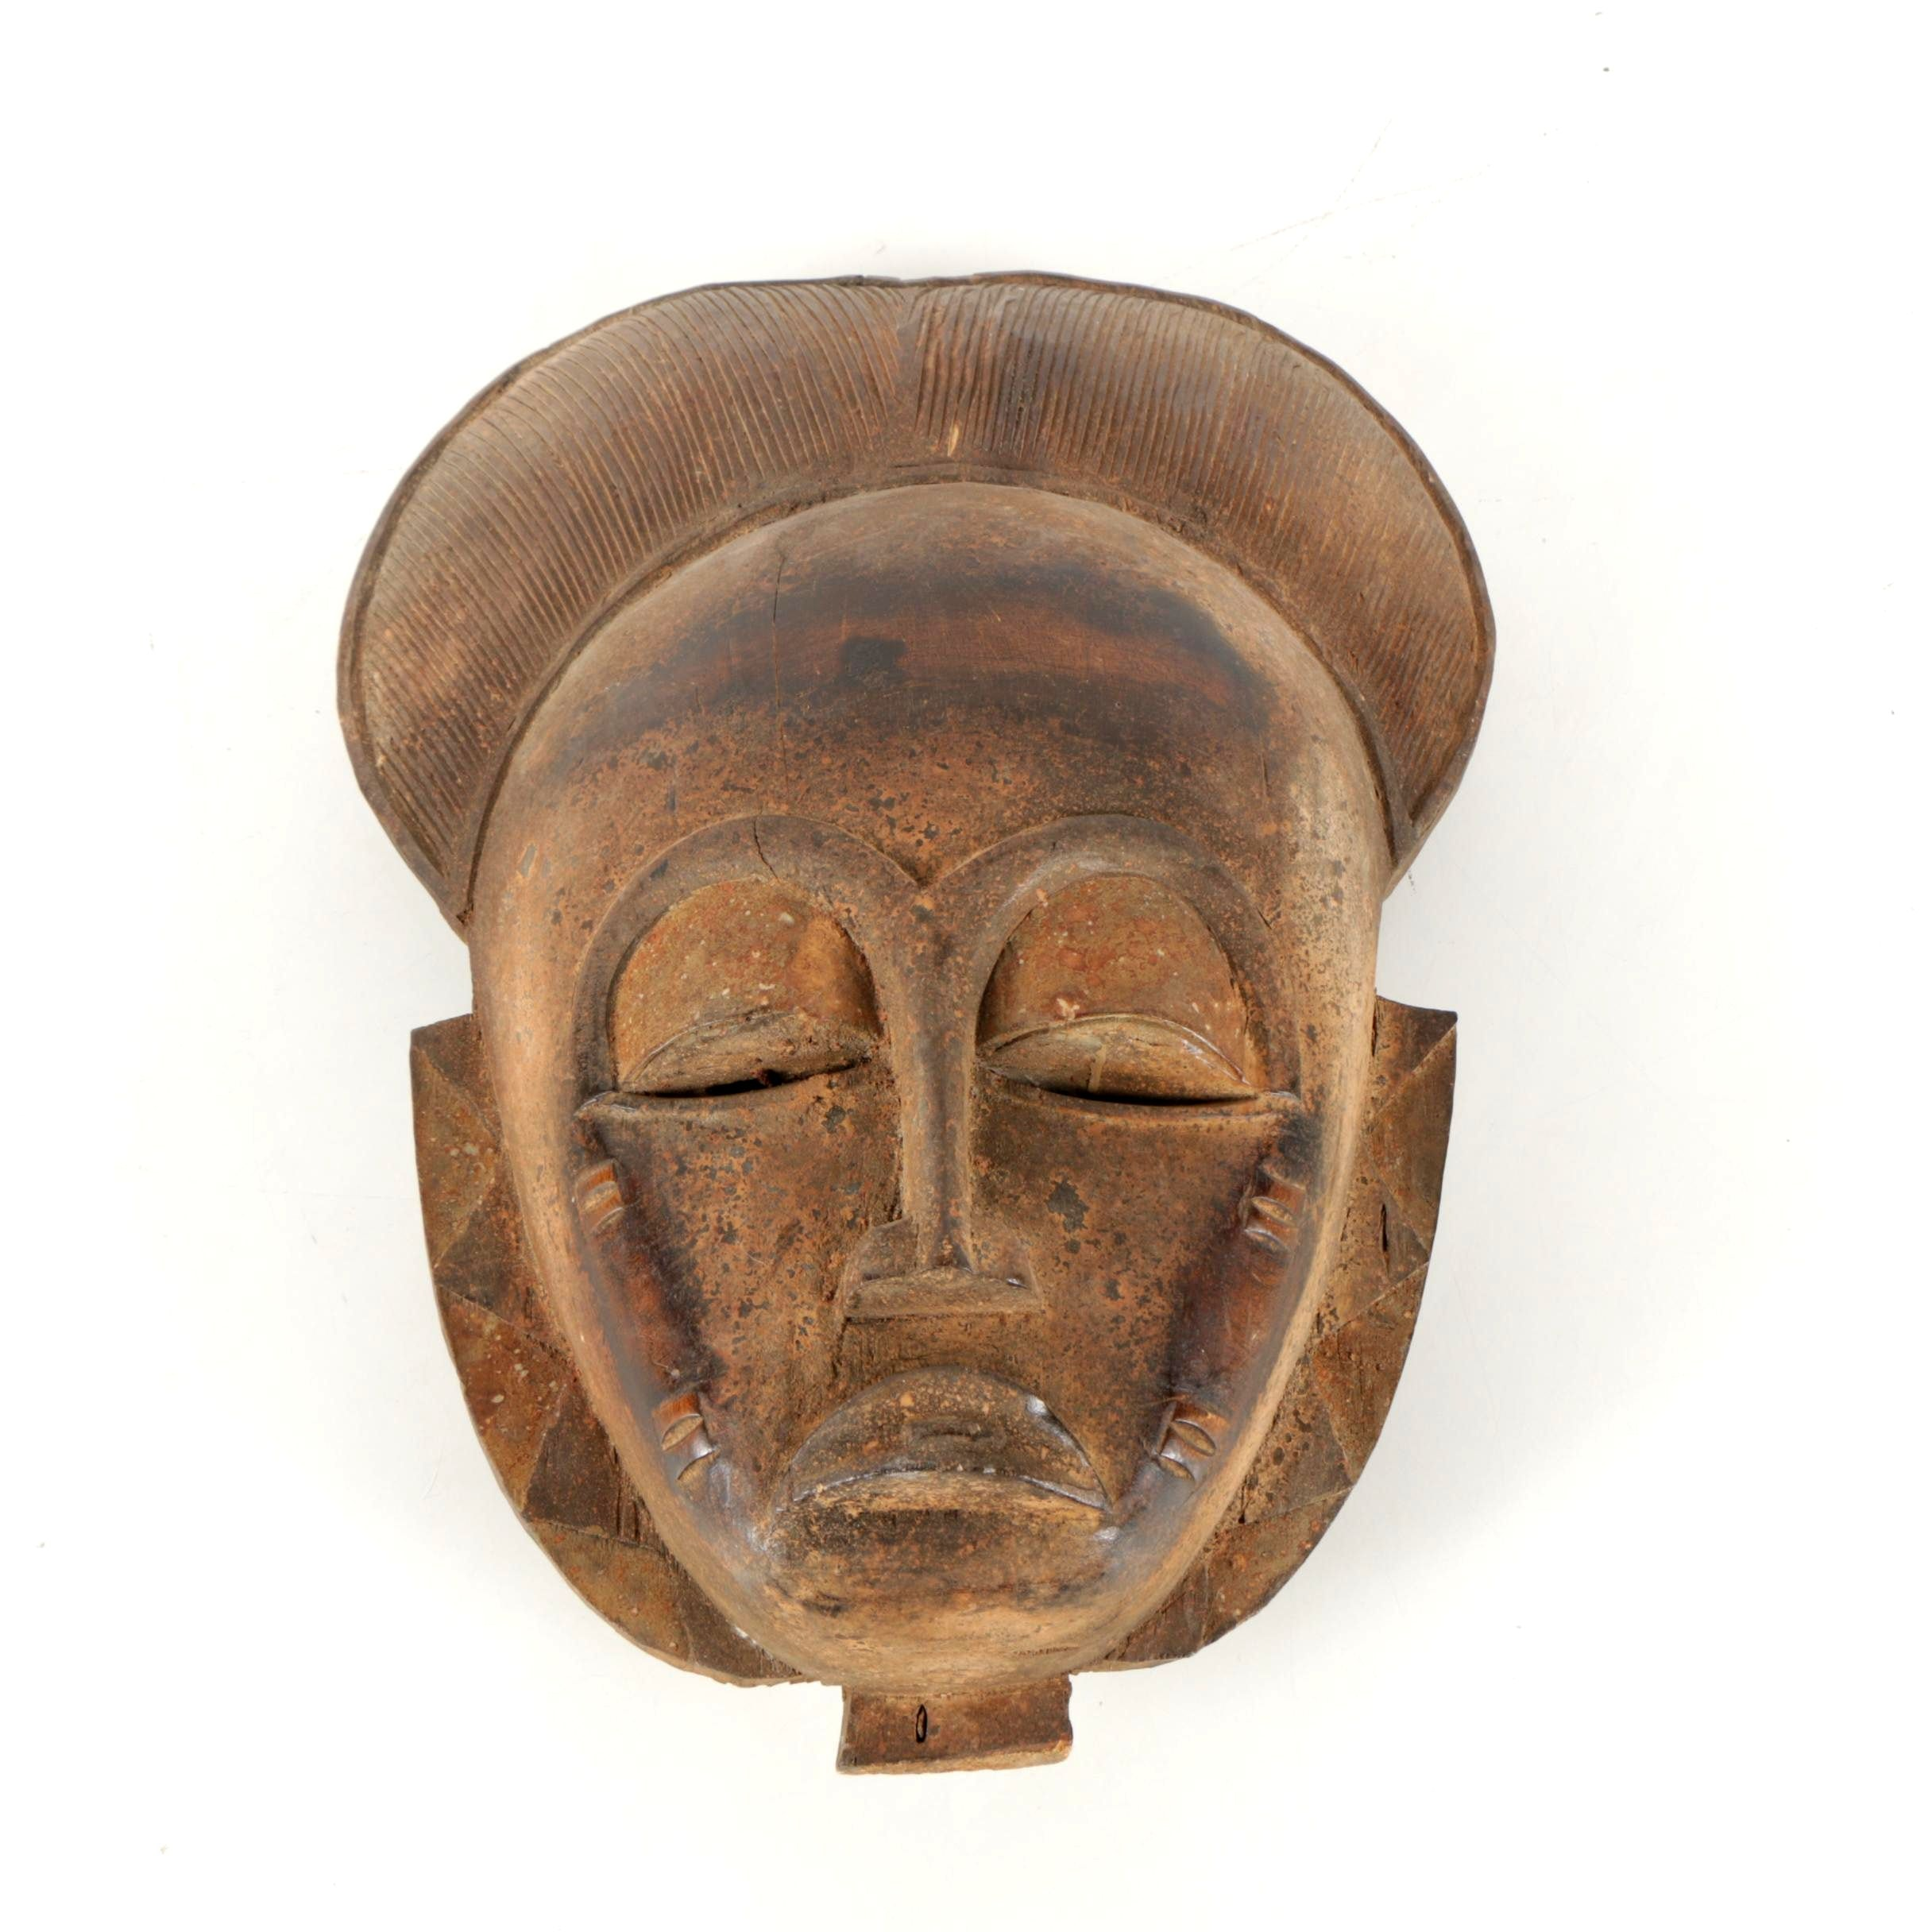 West African-Style Carved Wooden Mask